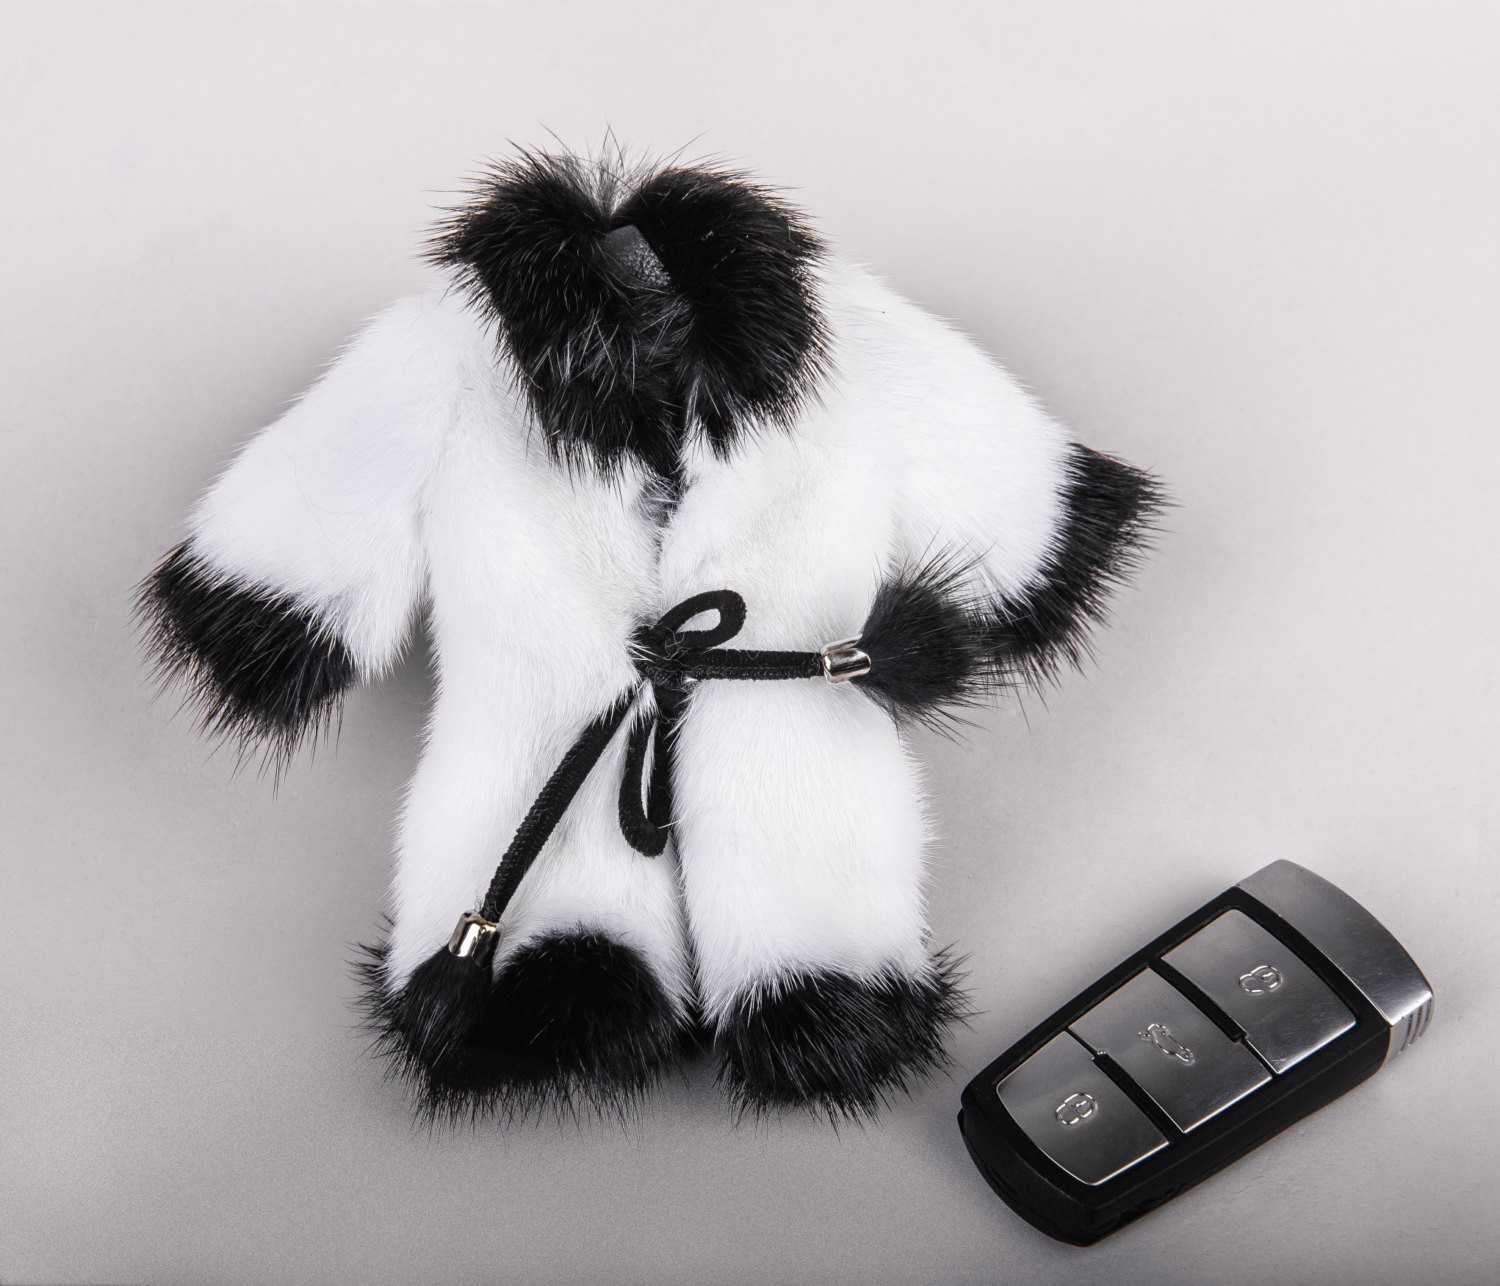 Buy Real Mink Fur Coat Keychain White and Black